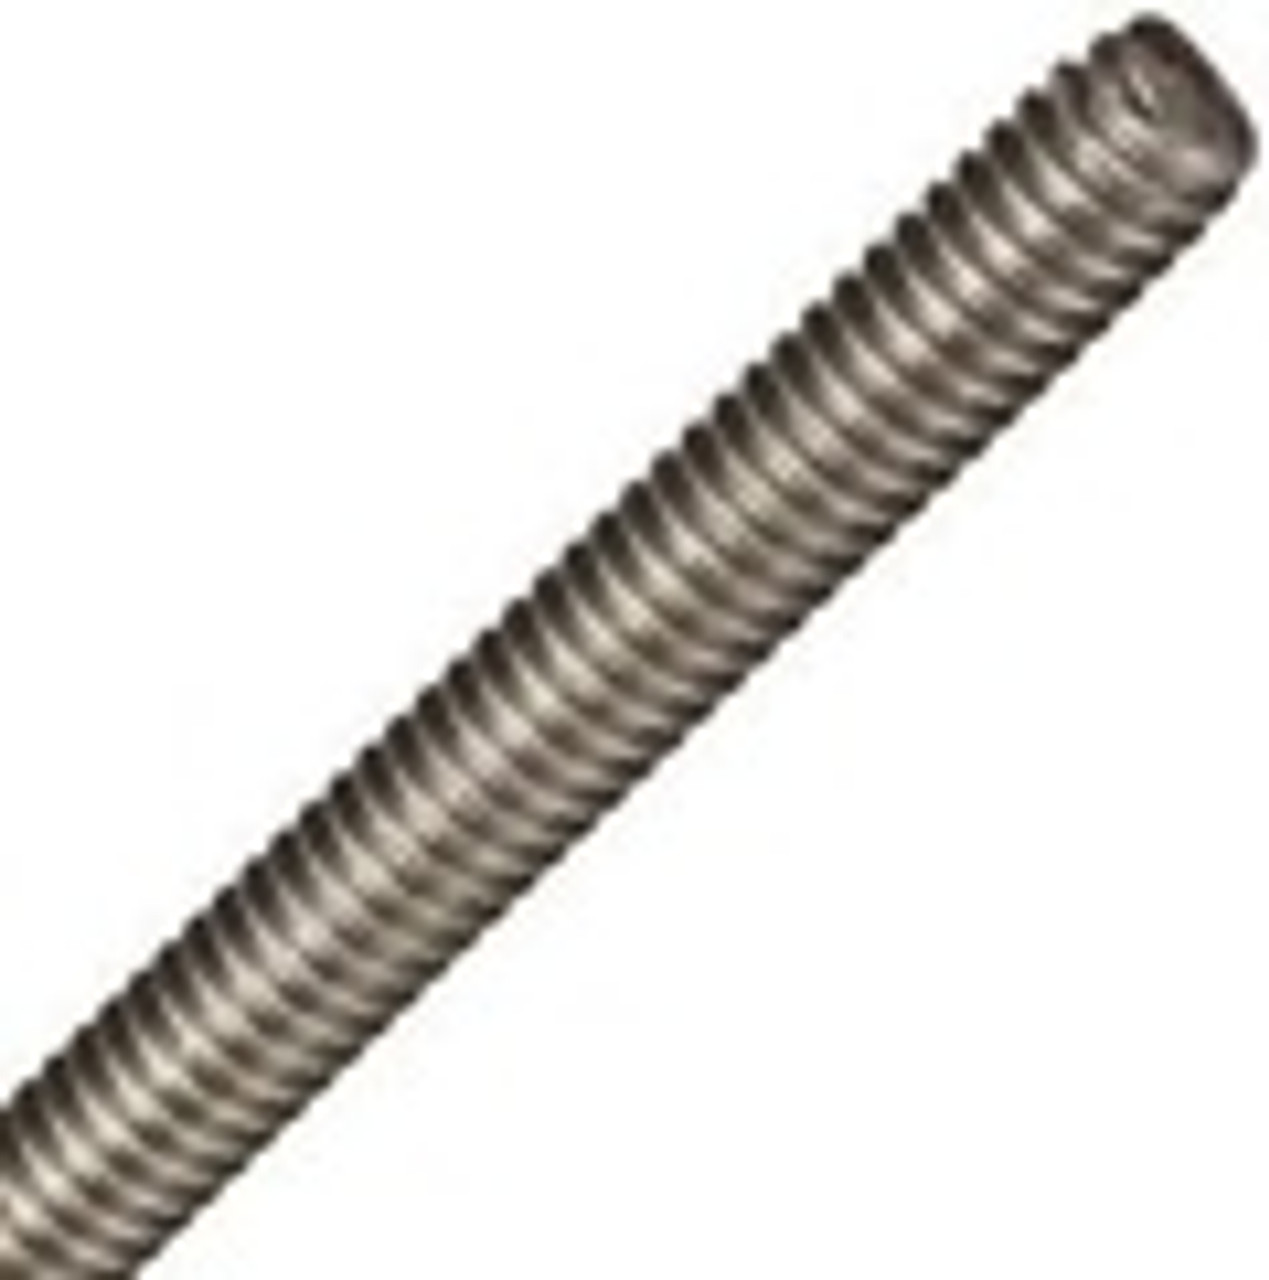 Threaded Rod Hi Strength A193 B7 4140 Alloy Threaded Rod Page 1 Nutty Company